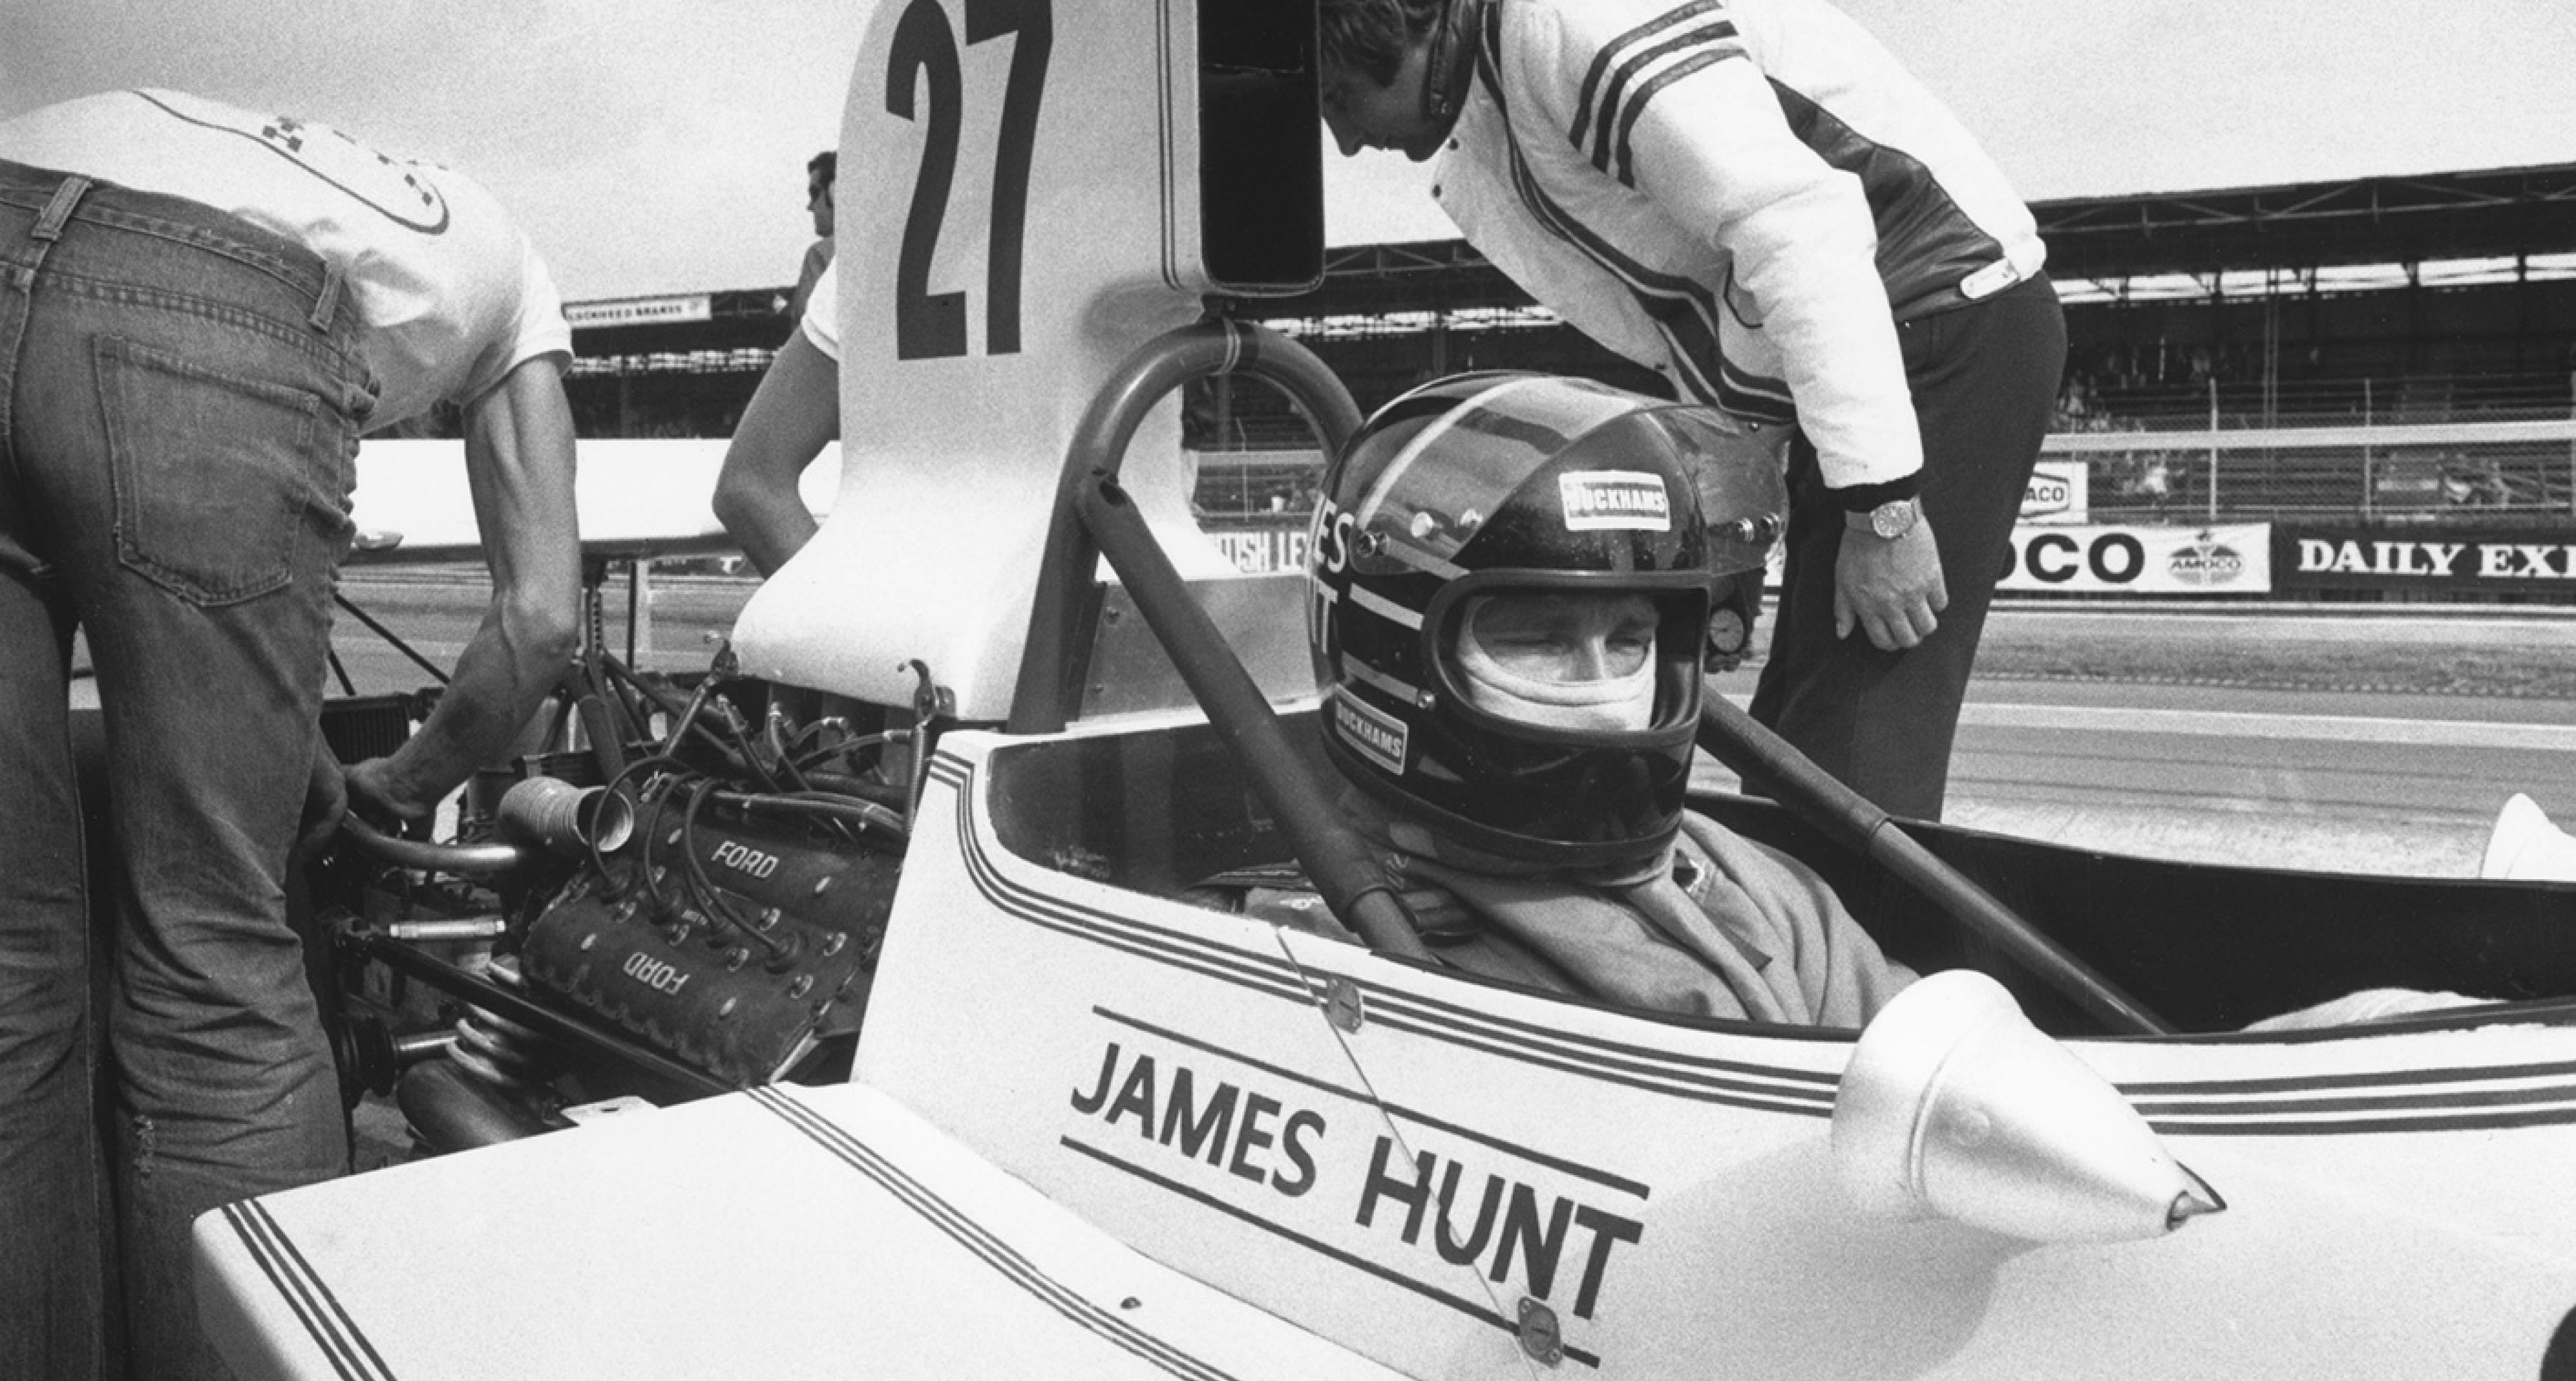 James Hunt appears a little queasy as he prepares for his first Silverstone GP, 1973